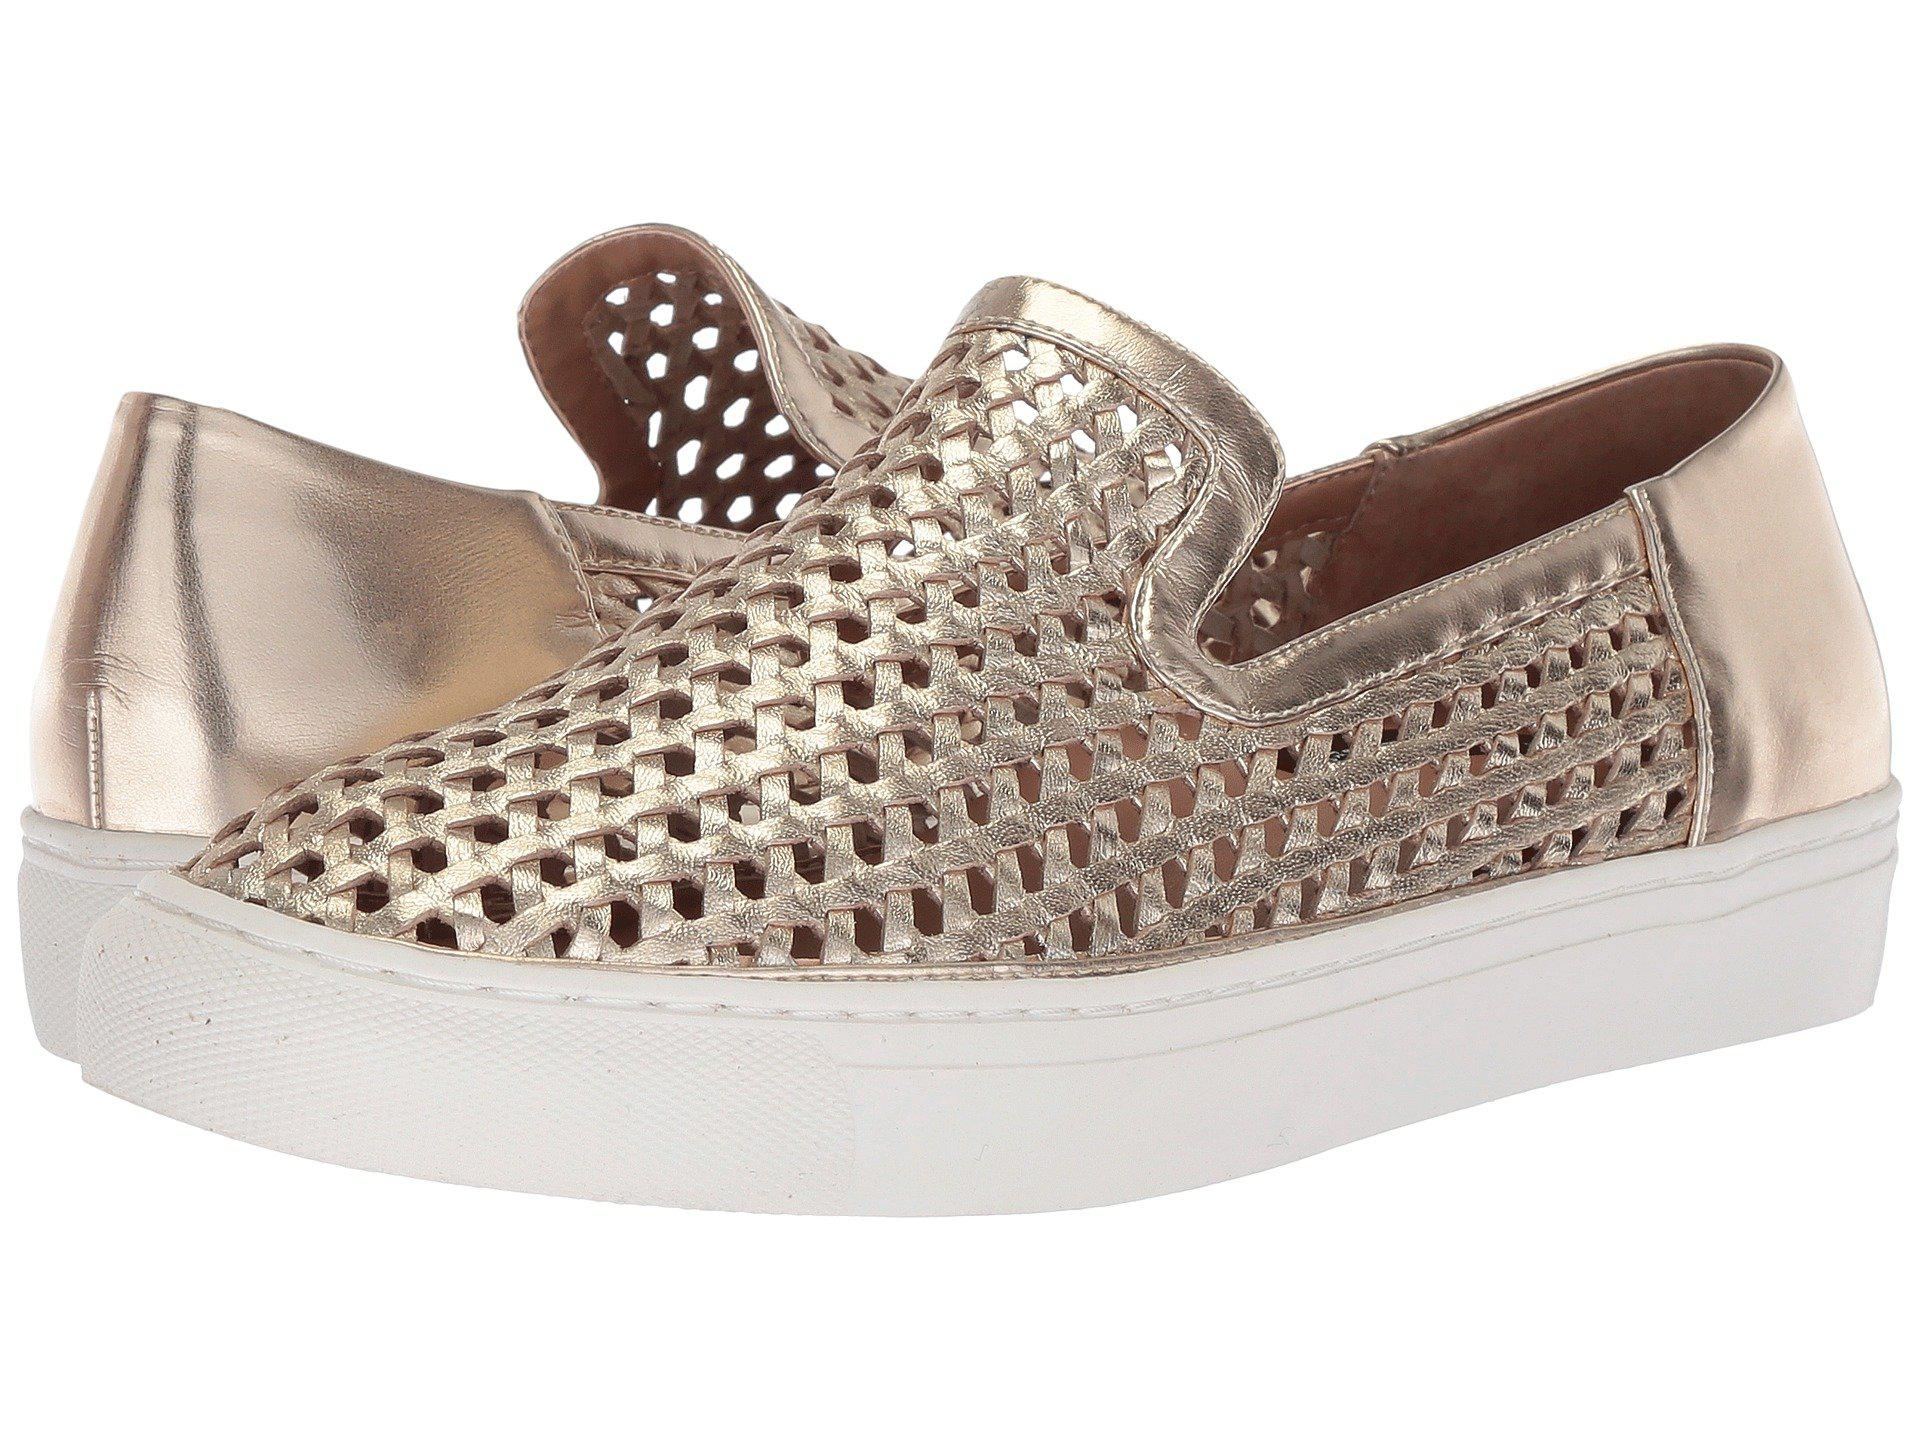 Steven by Steve Madden Keats Slip-On Sneakers A9pieFtDM